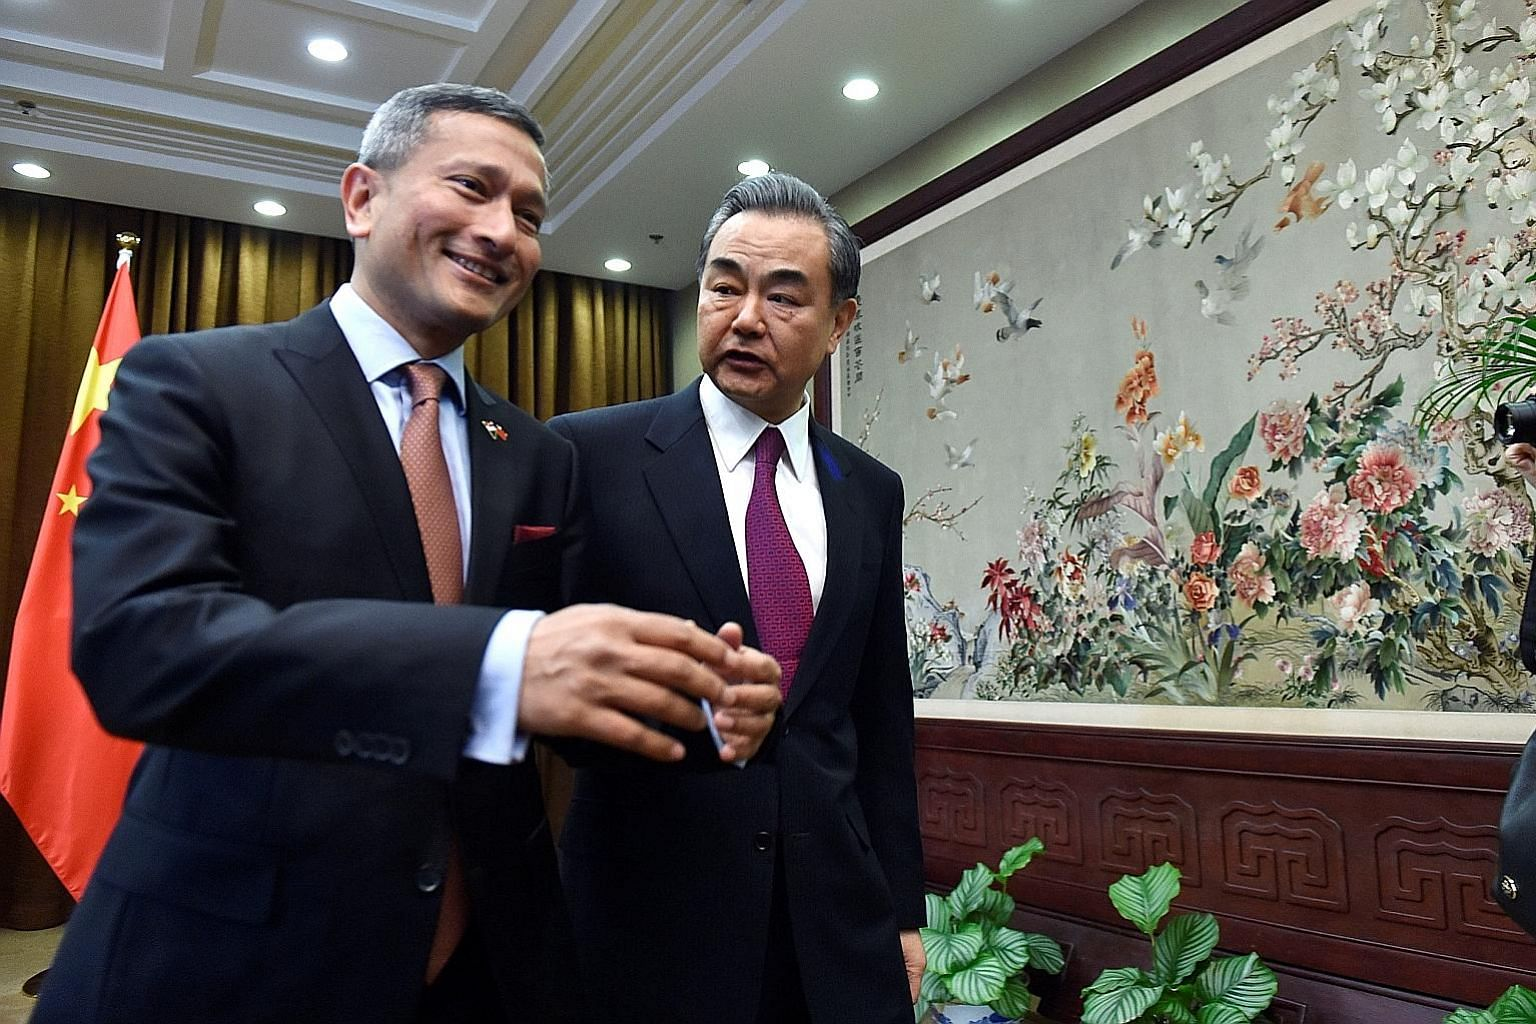 Foreign Minister Vivian Balakrishnan with China's Foreign Minister Wang Yi in Beijing yesterday. Both said they would defend free trade and multilateralism together at a time when protectionist tendencies are on the rise.